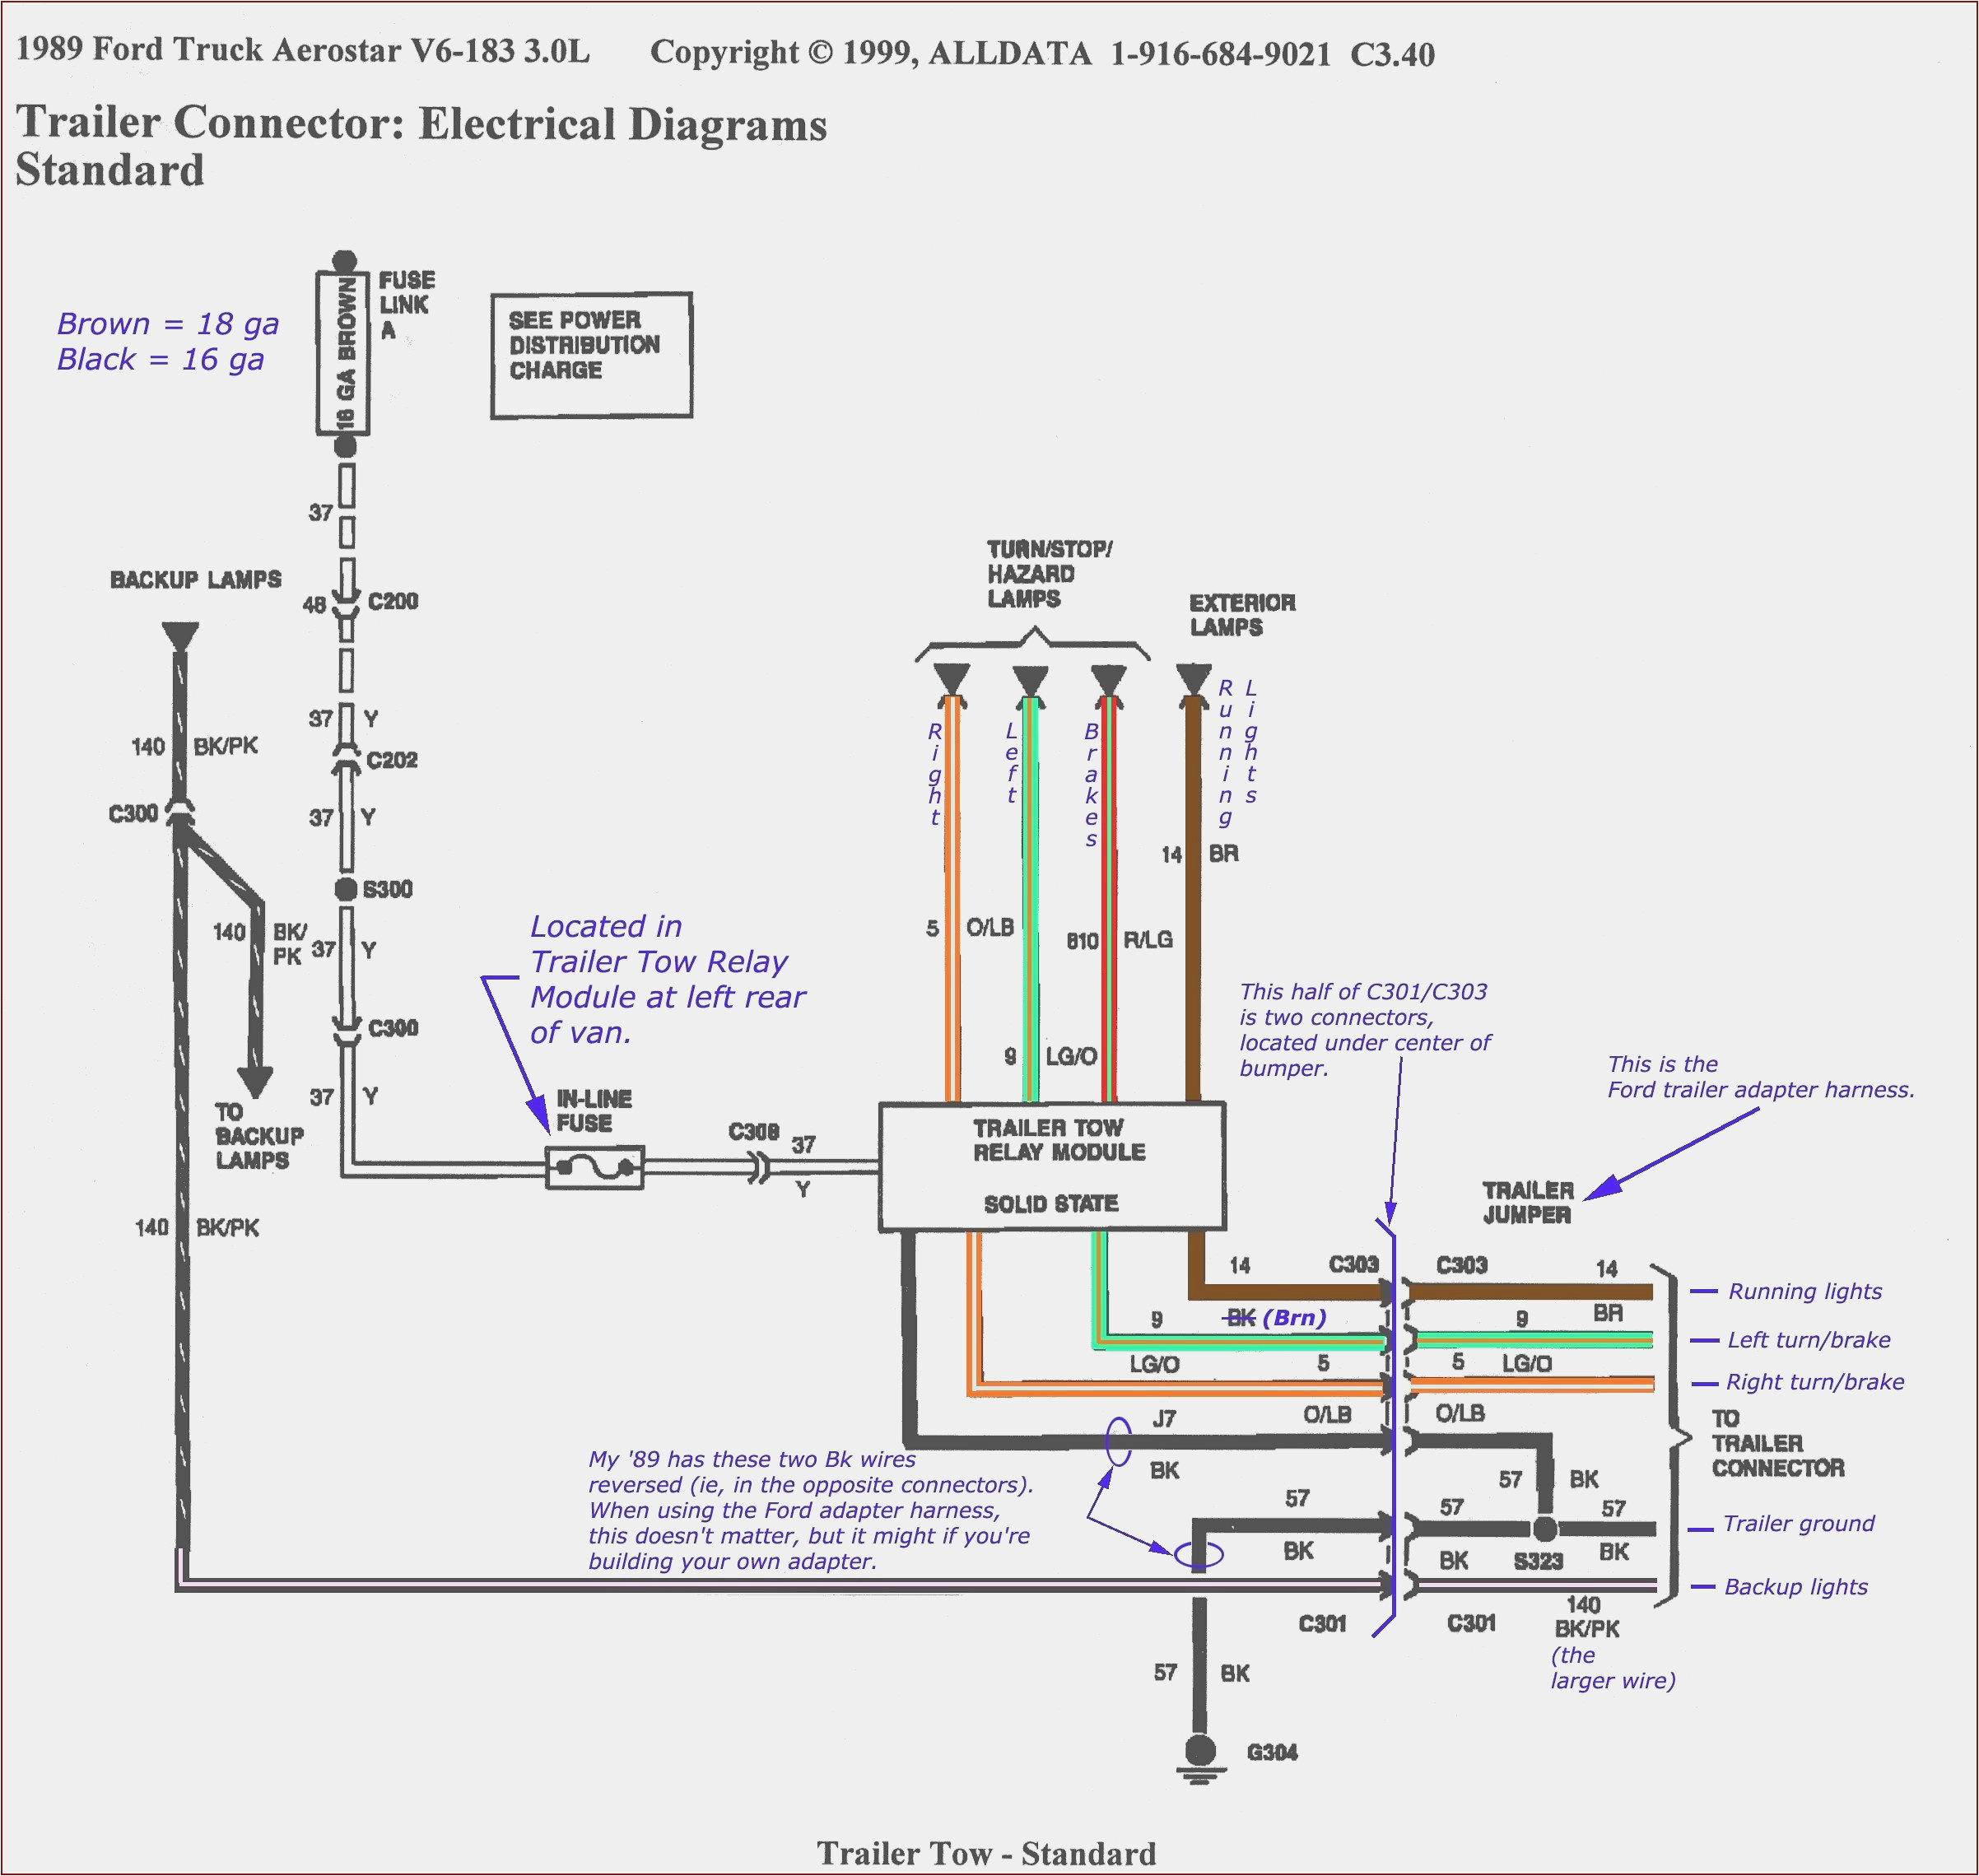 ford trailer wiring harness diagram of ford trailer wiring harness diagram jpg